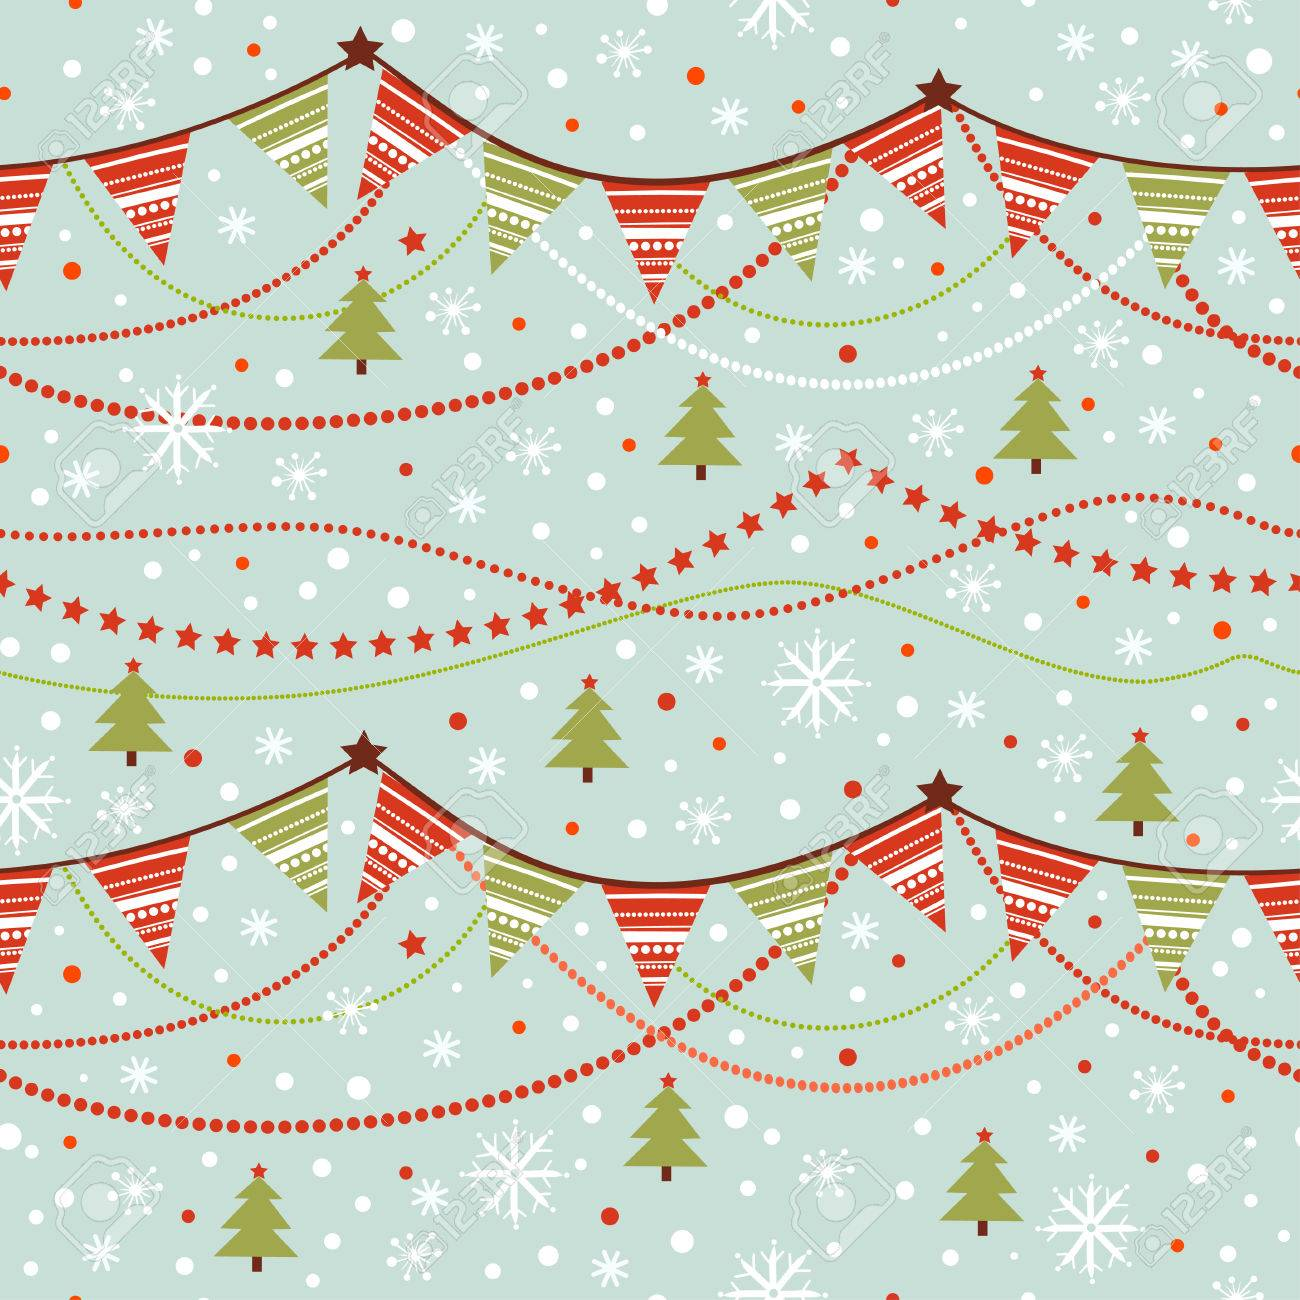 Party pennant bunting. Christmas seamless pattern with garland and snowflakes in cartoon style. - 49571810